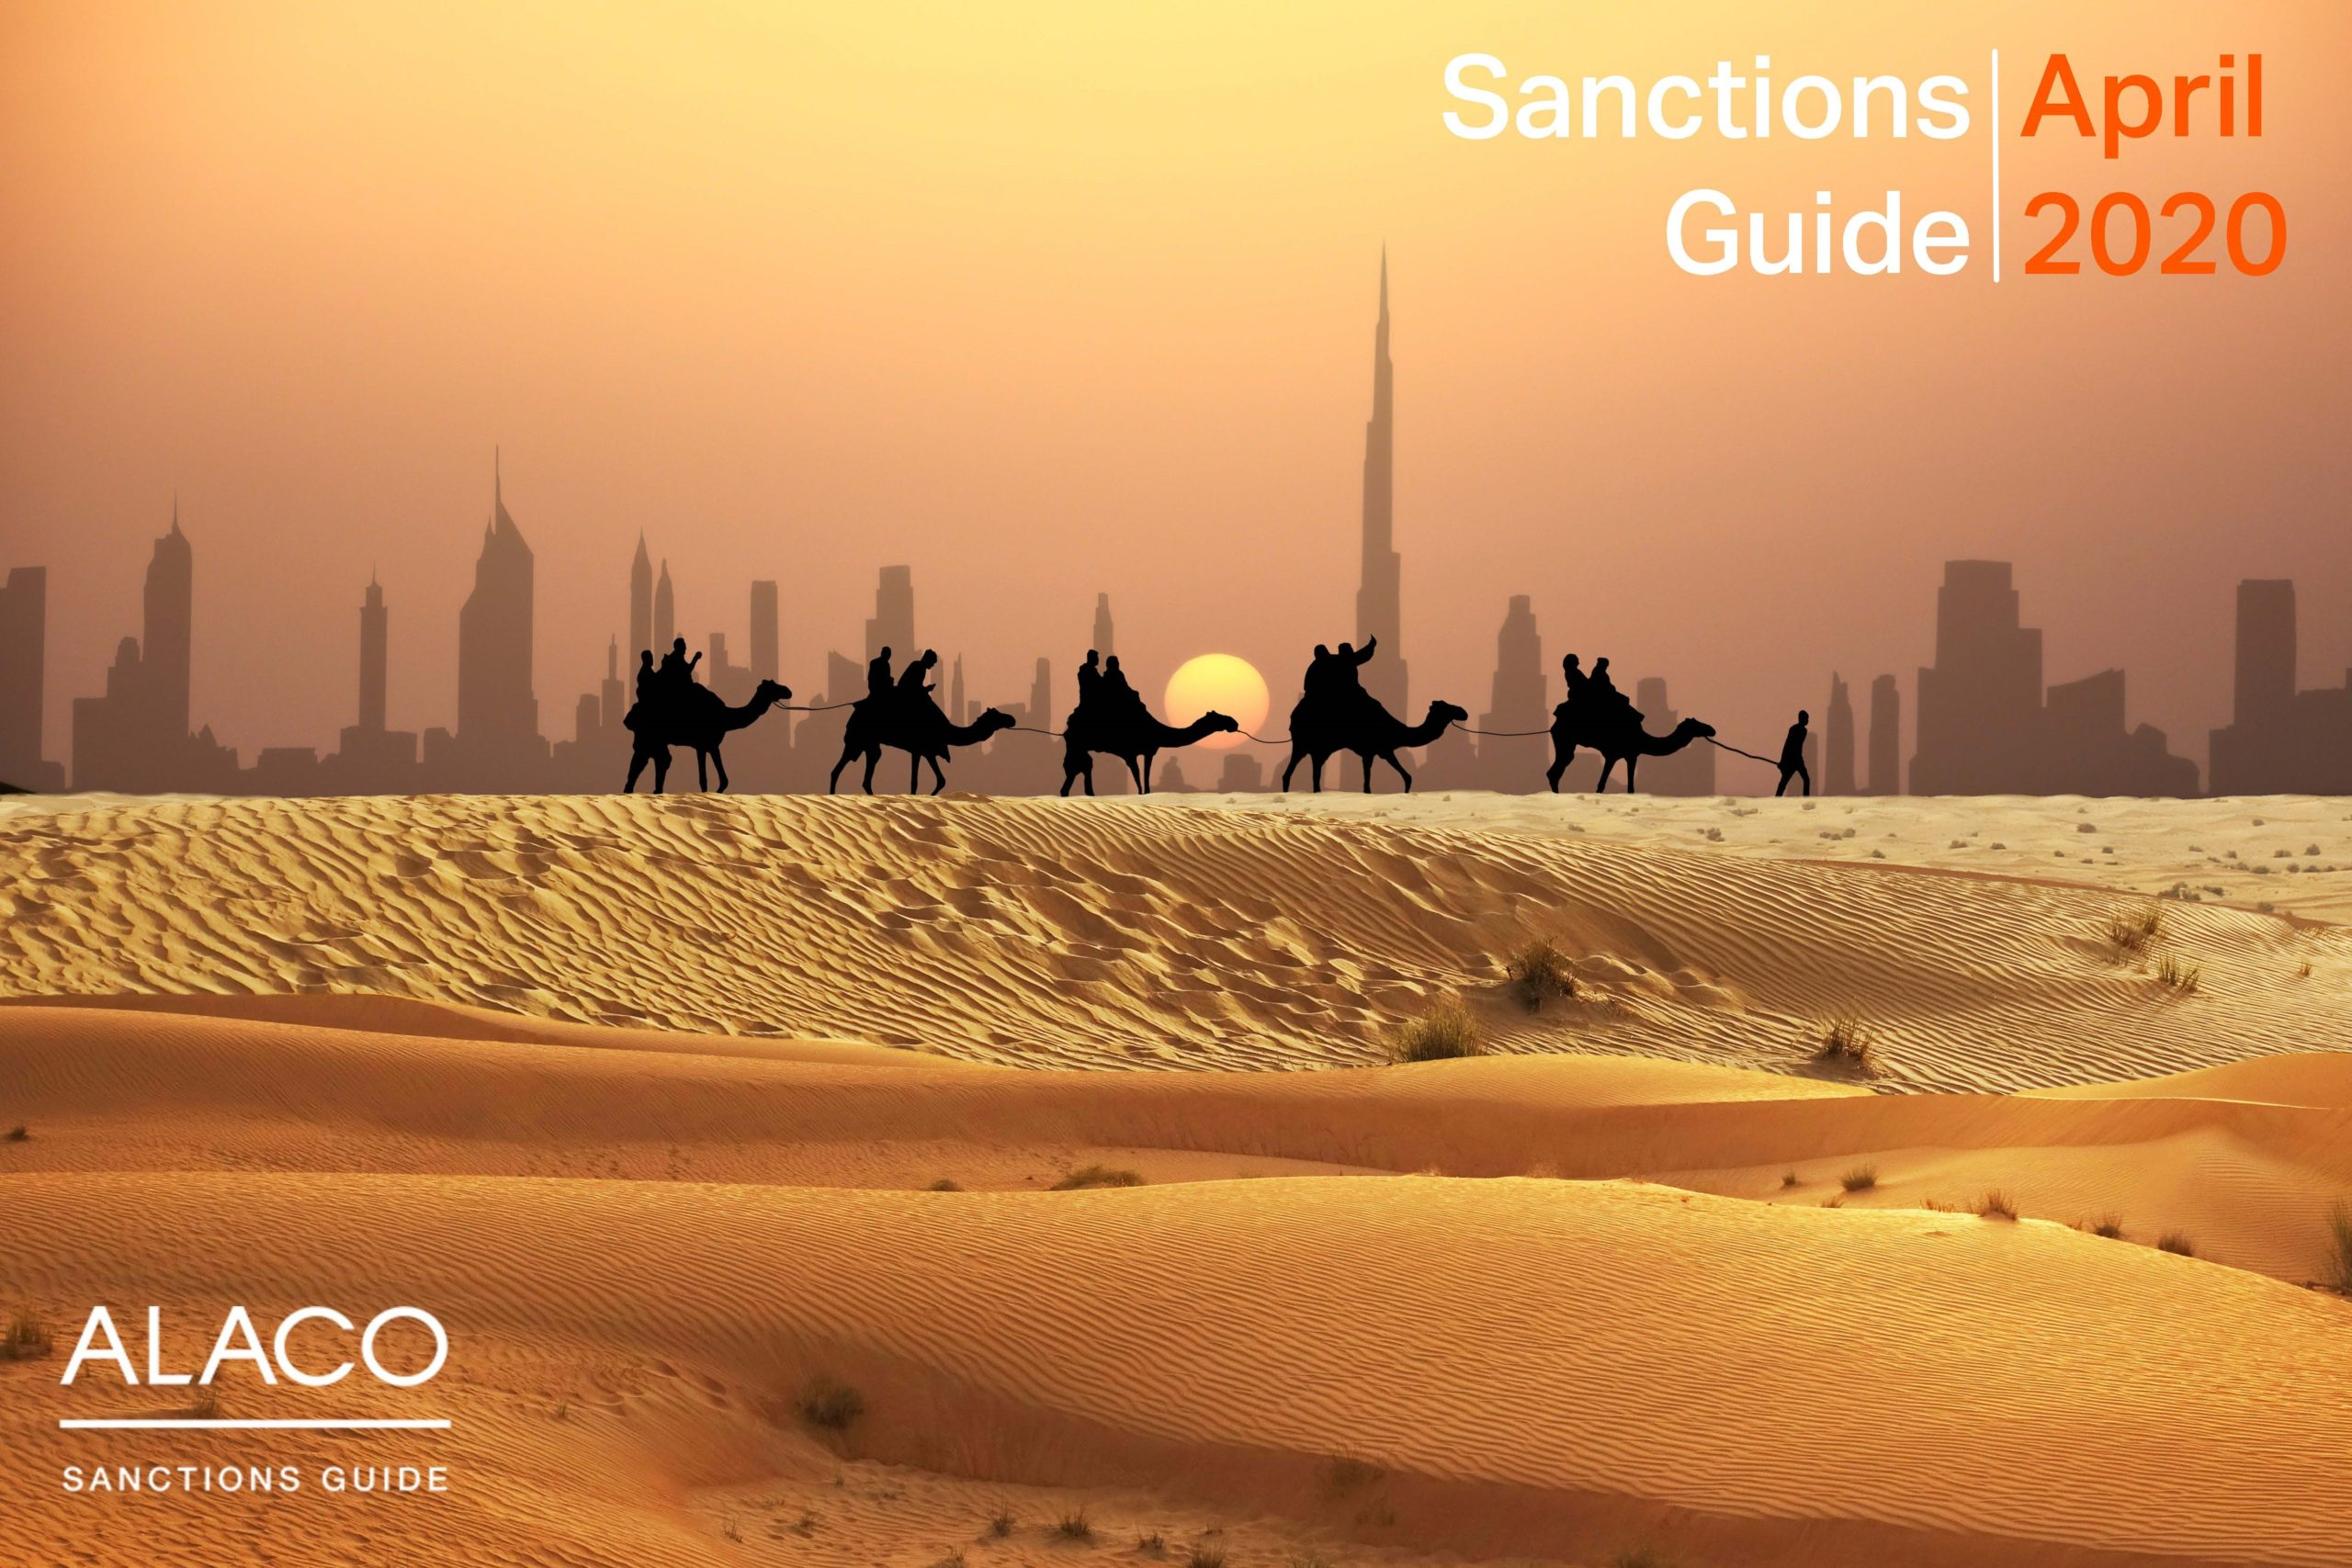 Sanctions Guide – April 2020